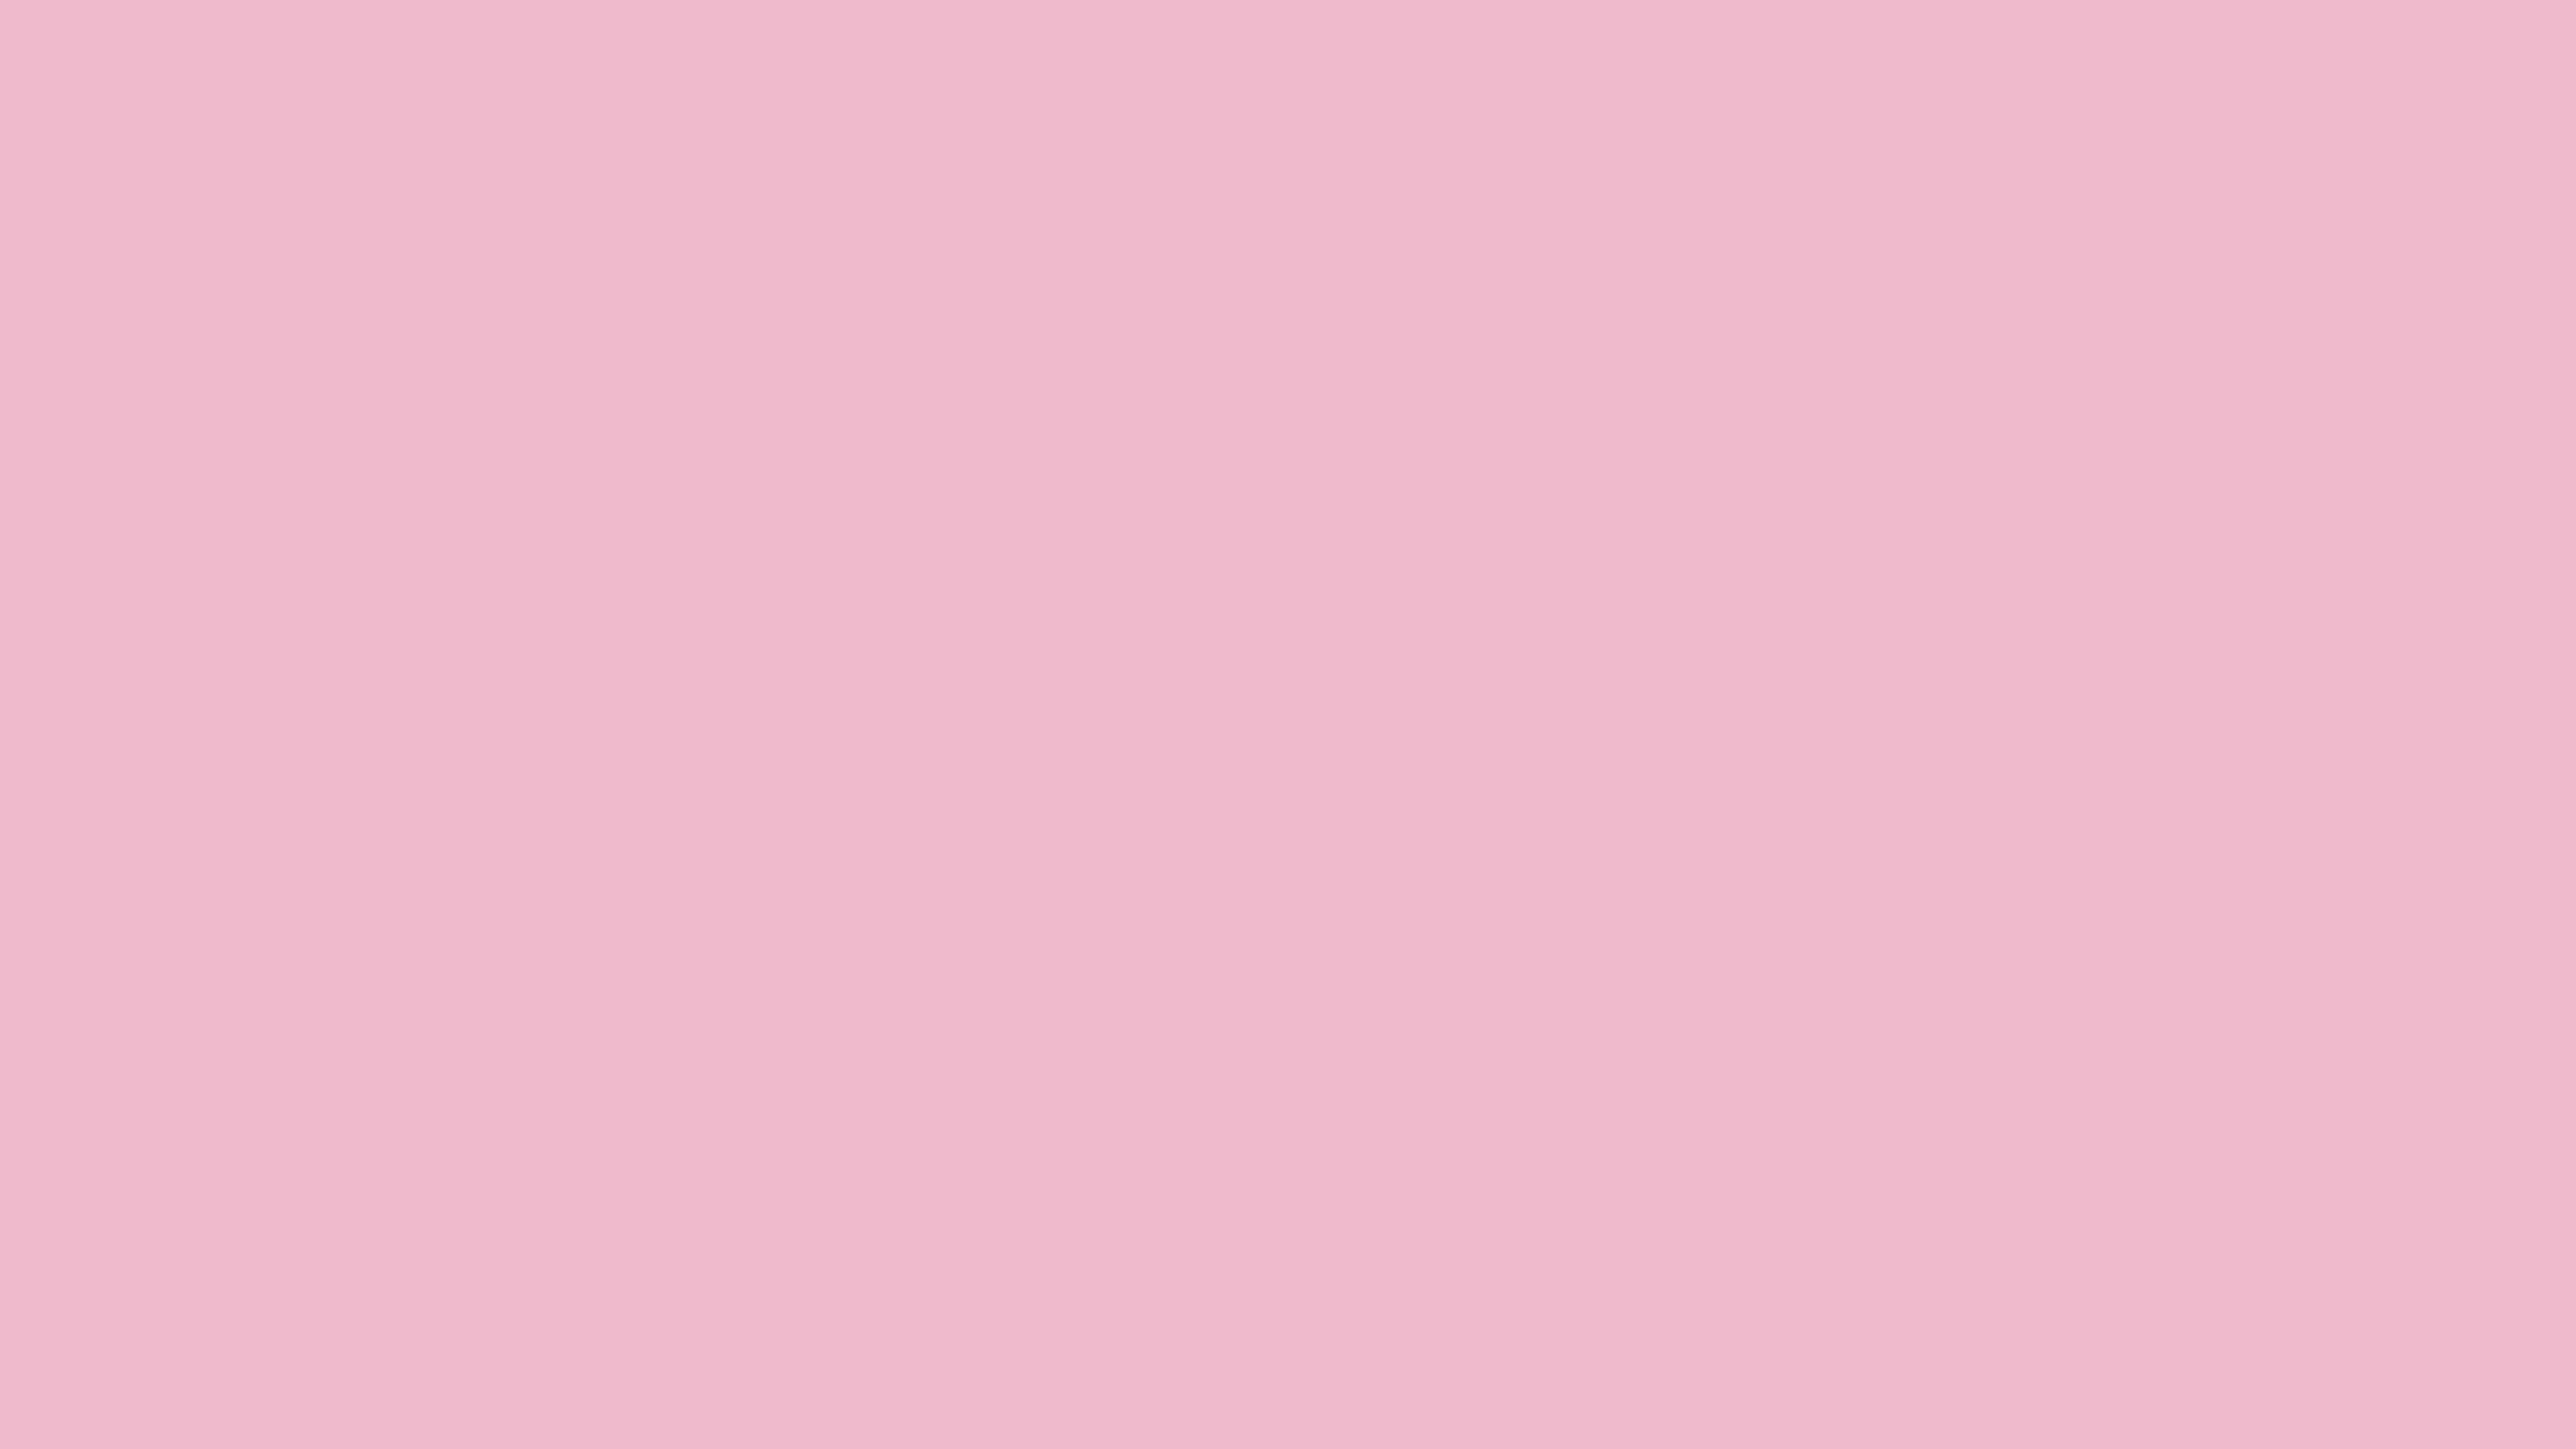 3840x2160 Cameo Pink Solid Color Background